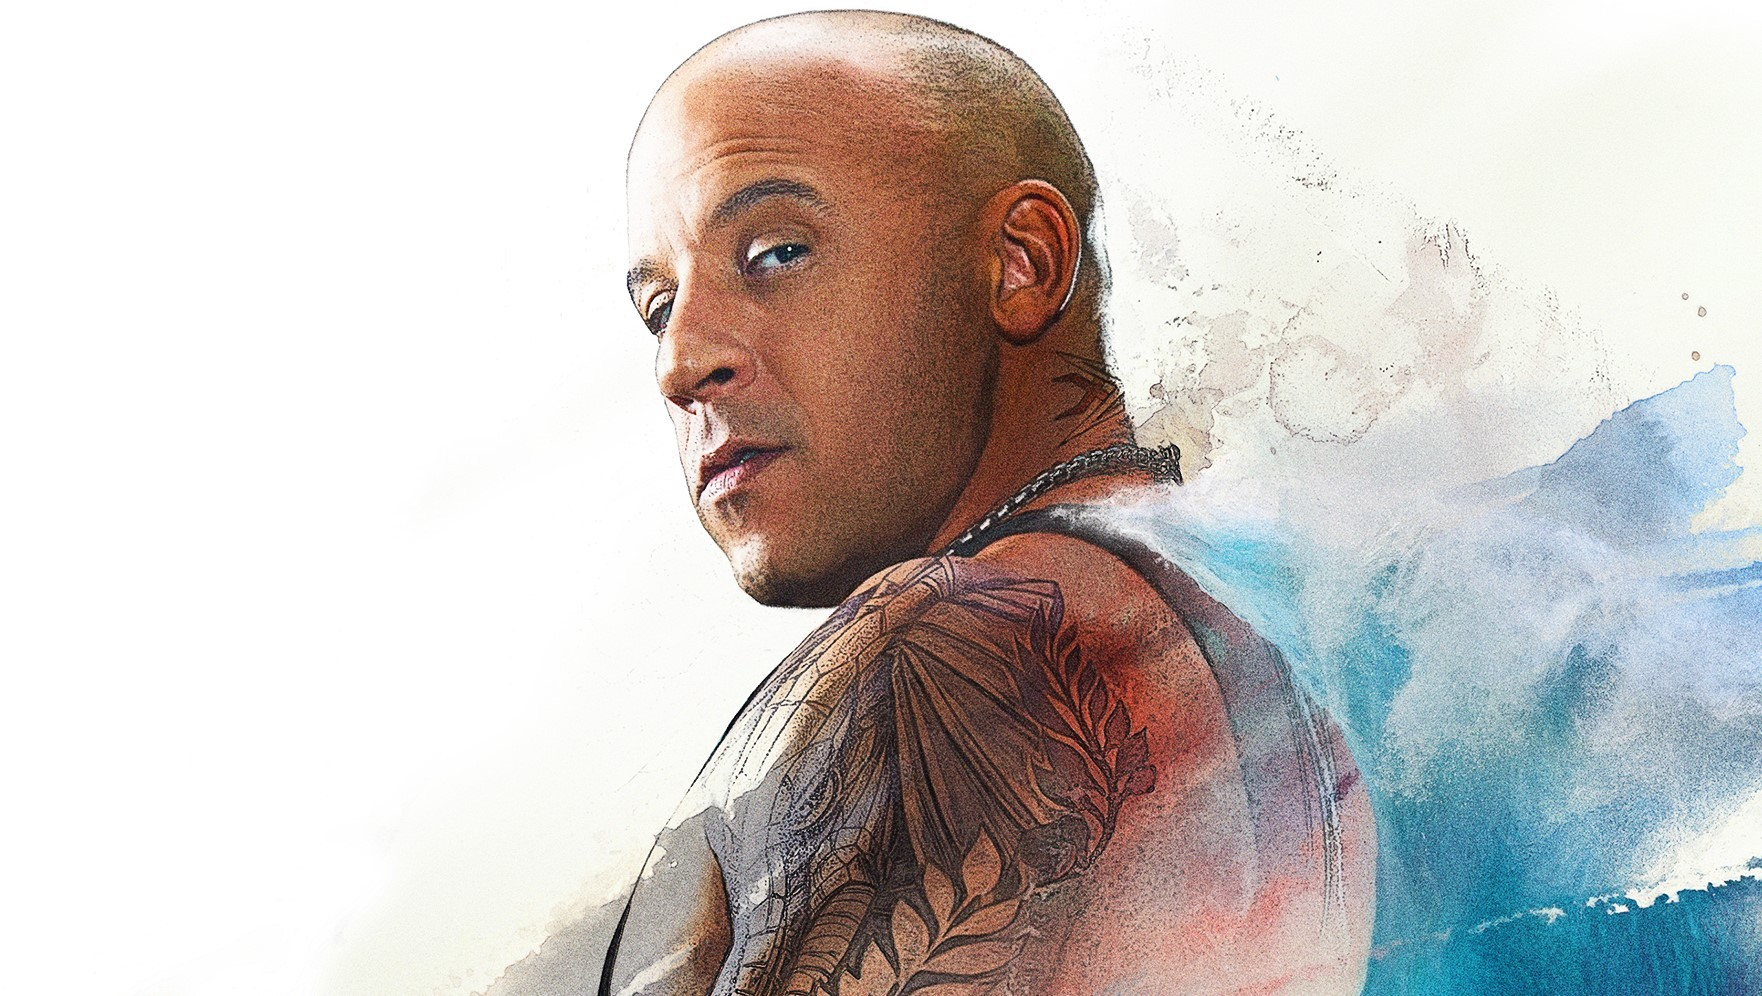 xXx: Return of Xander Cage Download